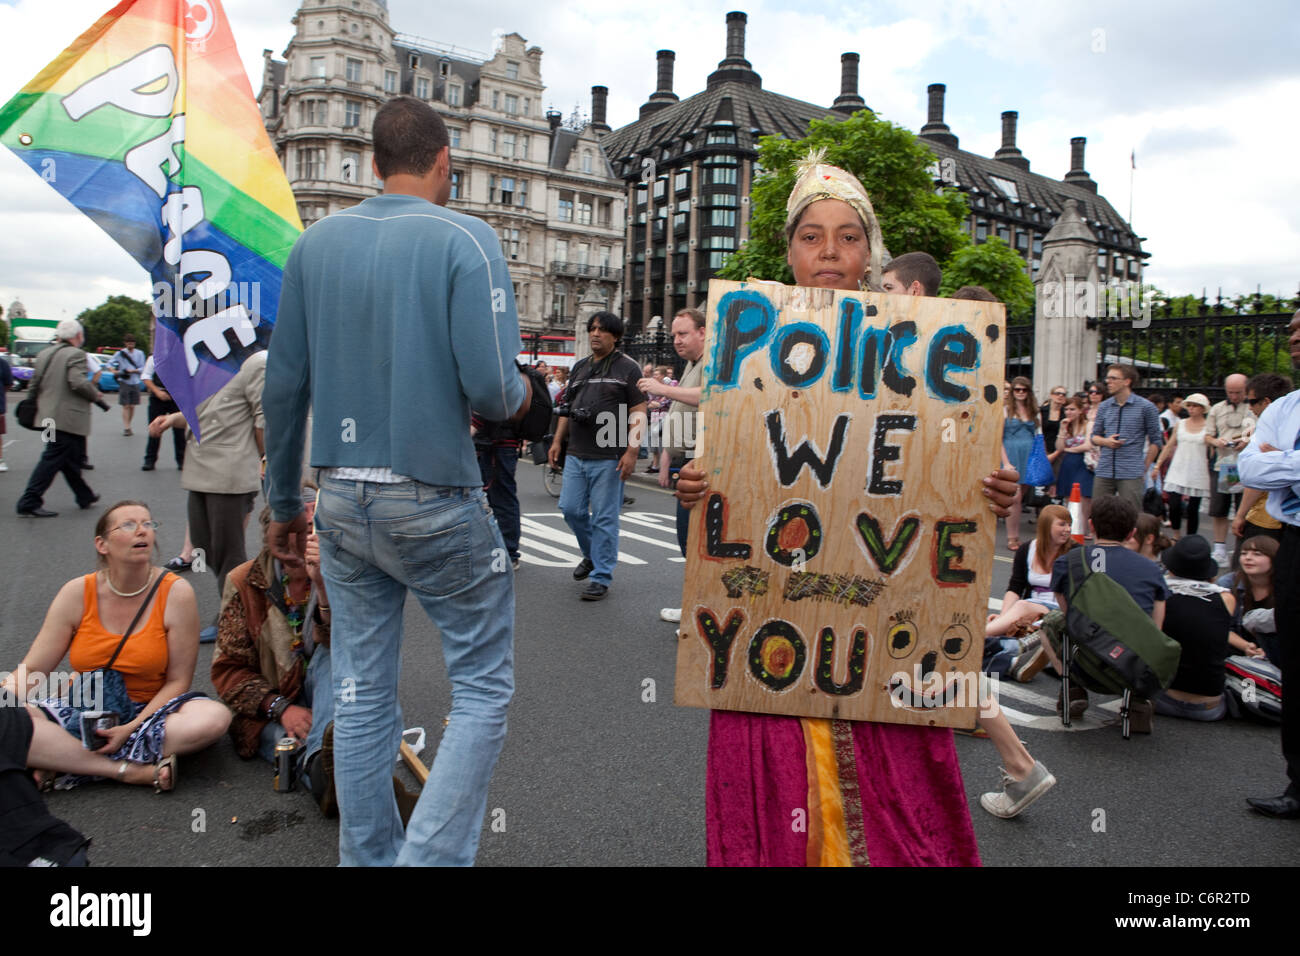 Democracy Village campers hold a peaceful sit-down protest outside the Houses of Parliament. - Stock Image